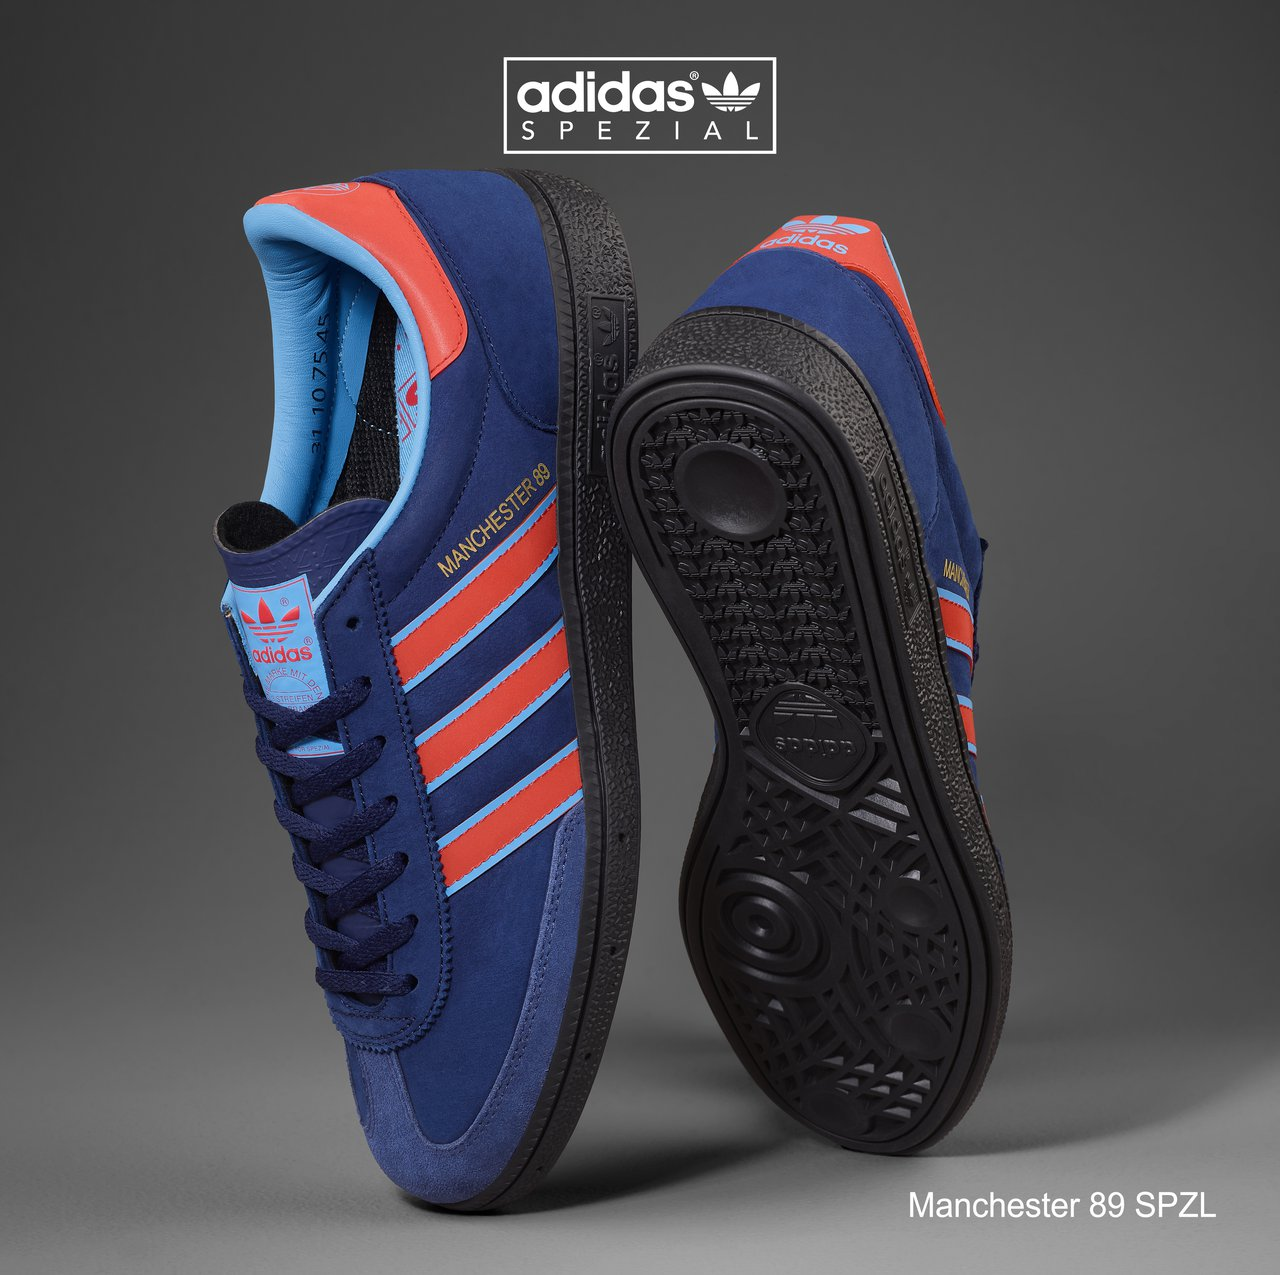 Adidas SPEZIAL Returns to Launch the Manchester 89 SPZL Trainer ...